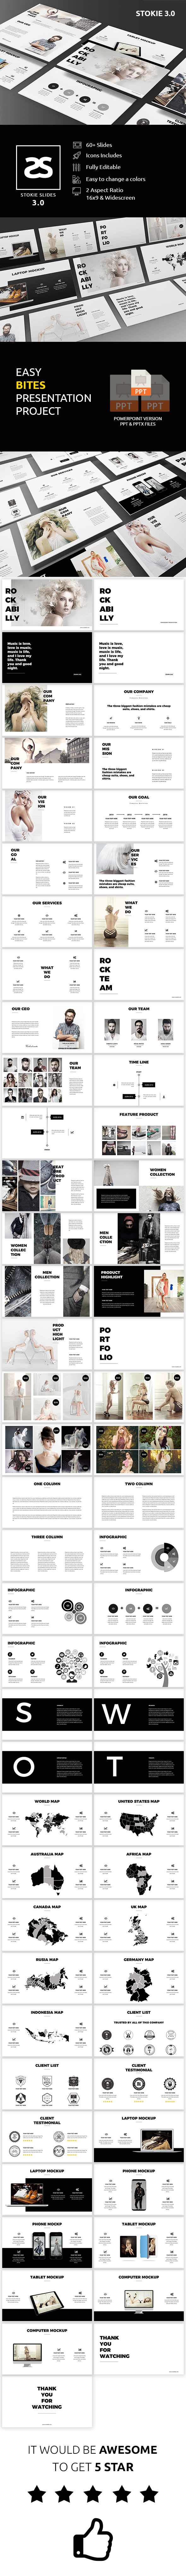 GraphicRiver Fashion Powerpoint Template 3.0 20811503